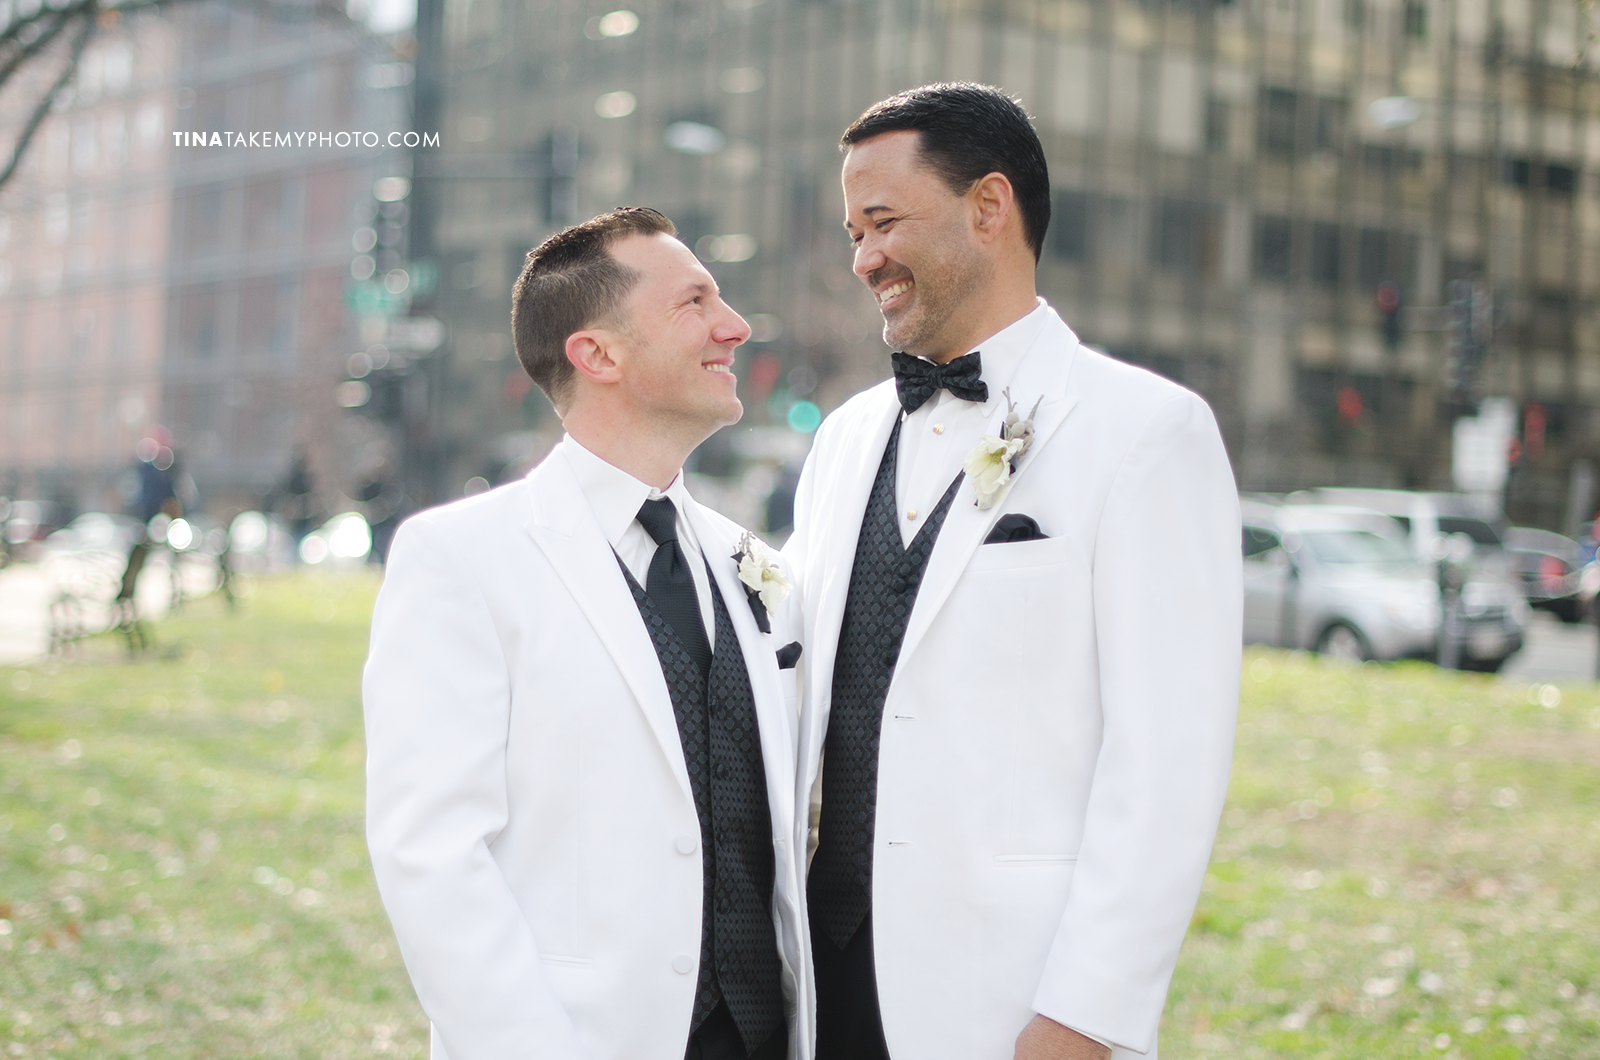 01-Washington-DC-Gay-Same-Sex-Wedding-Men-12-13-14-Pose-City-White-Jackets-Photographer  (40)